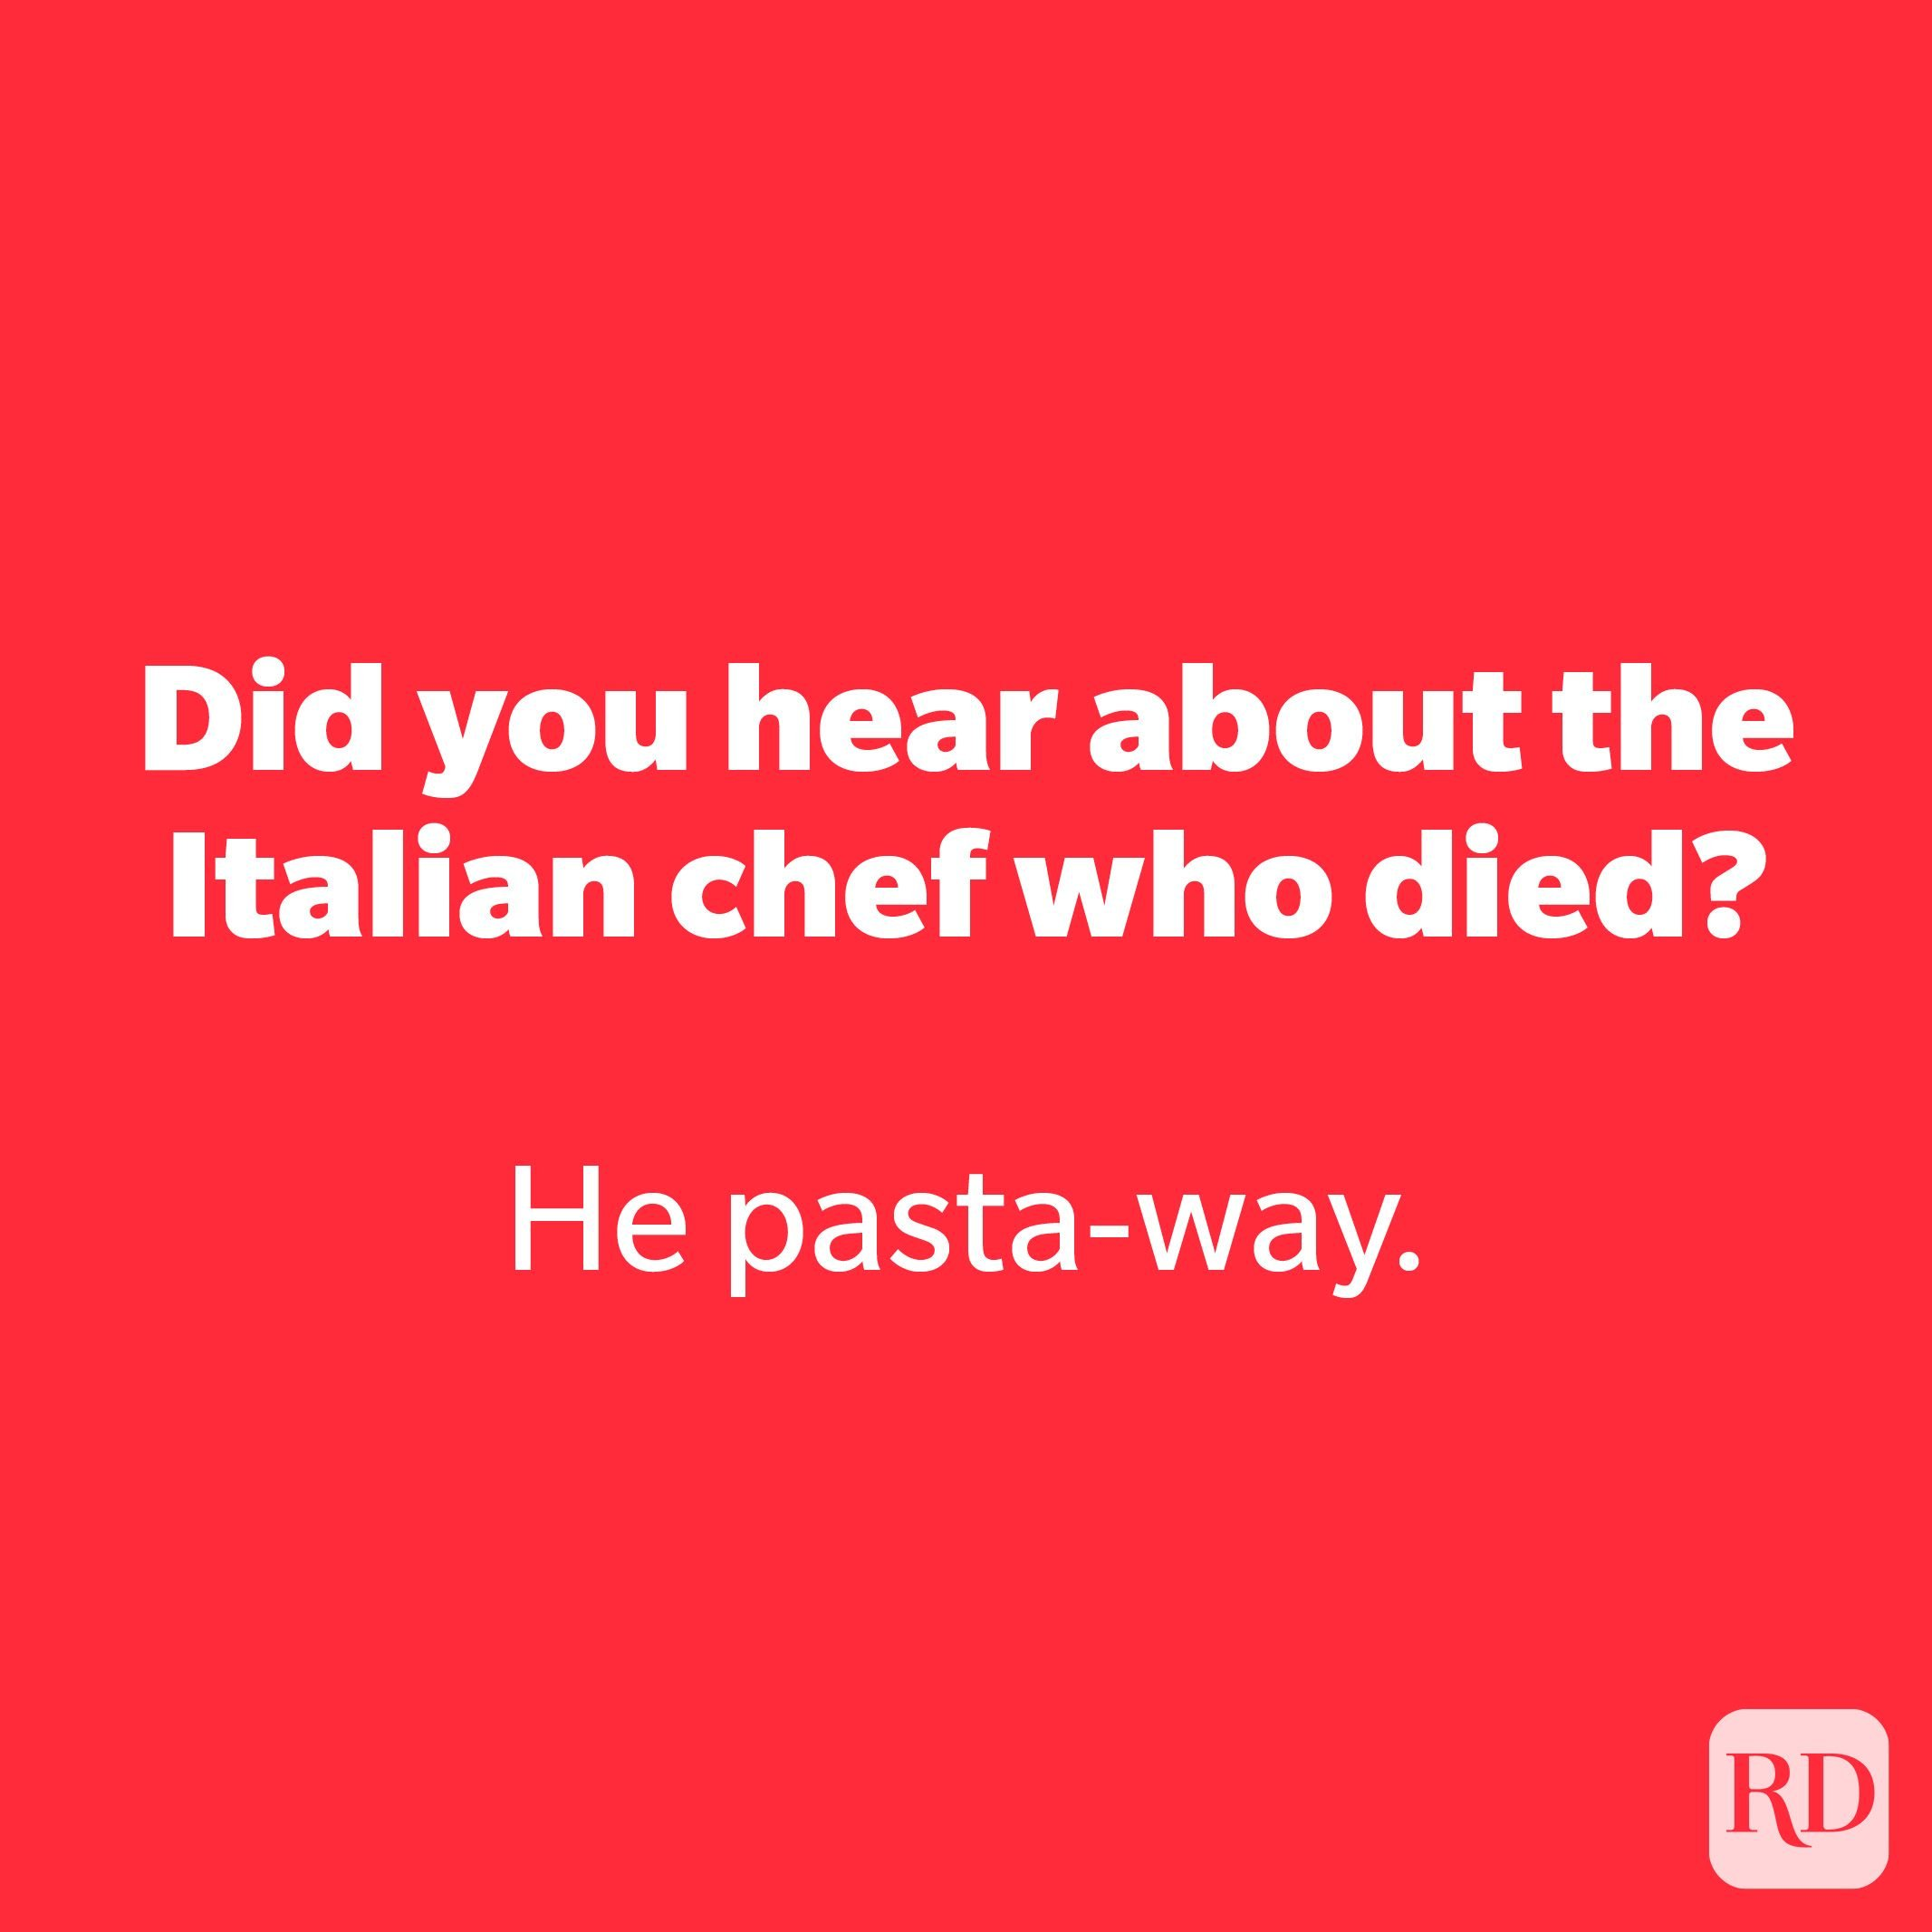 Did you hear about the Italian chef who died?